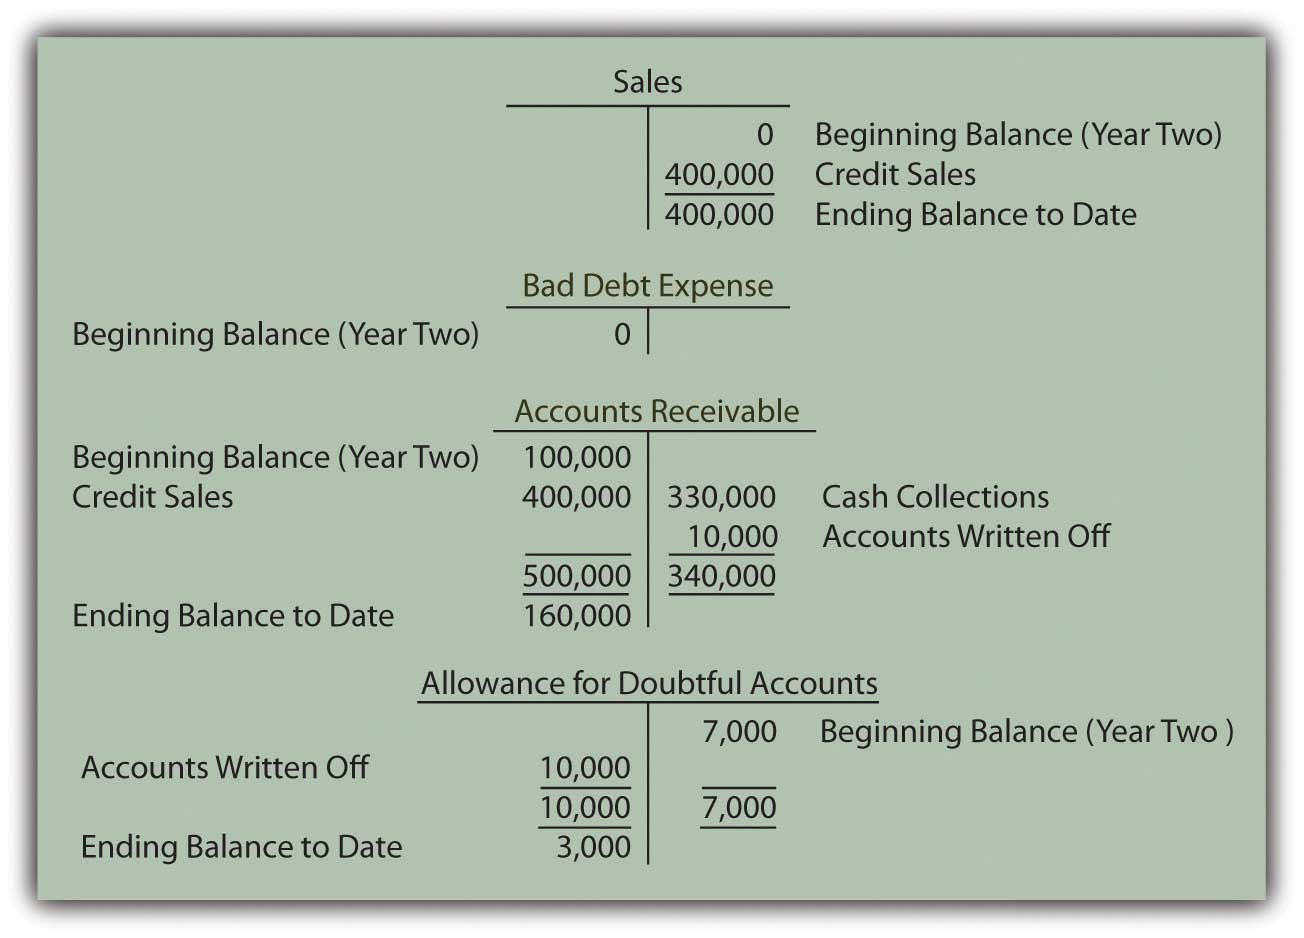 End of Year Two--Sales, Receivables, and Bad Debt Balances